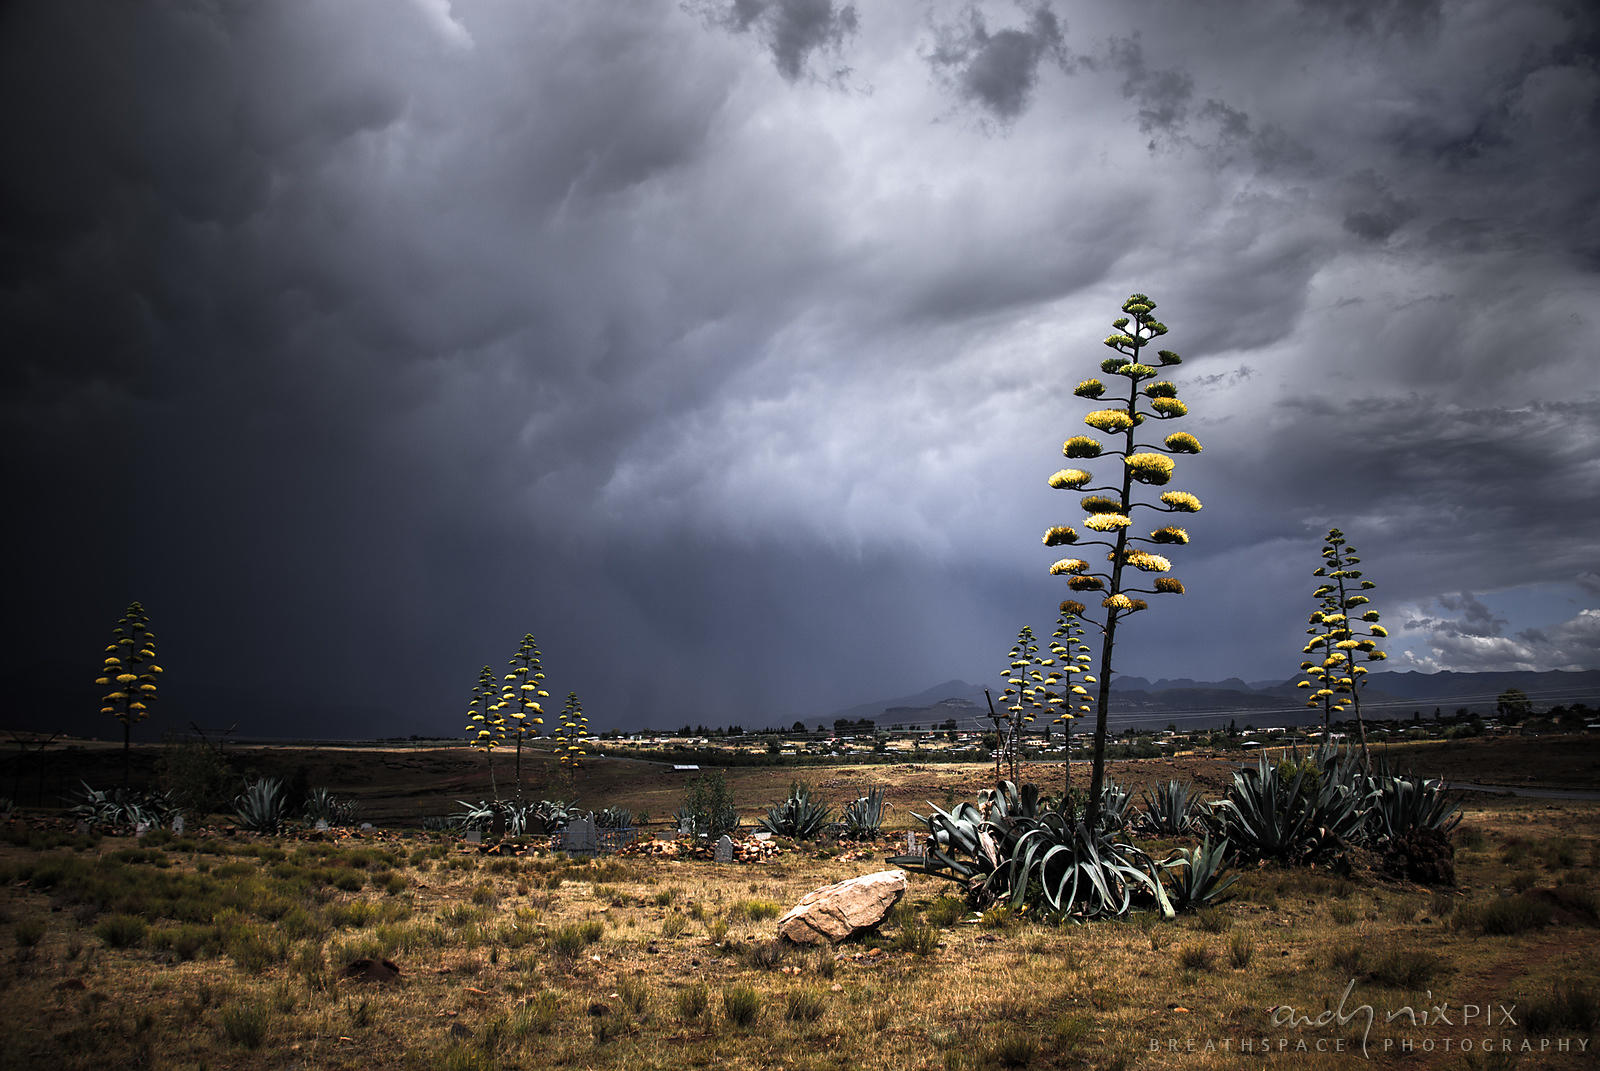 Dark thunderclouds form a background for yukka plants growing in a tiny graveyard with a few olf gravestones outside a rural ...